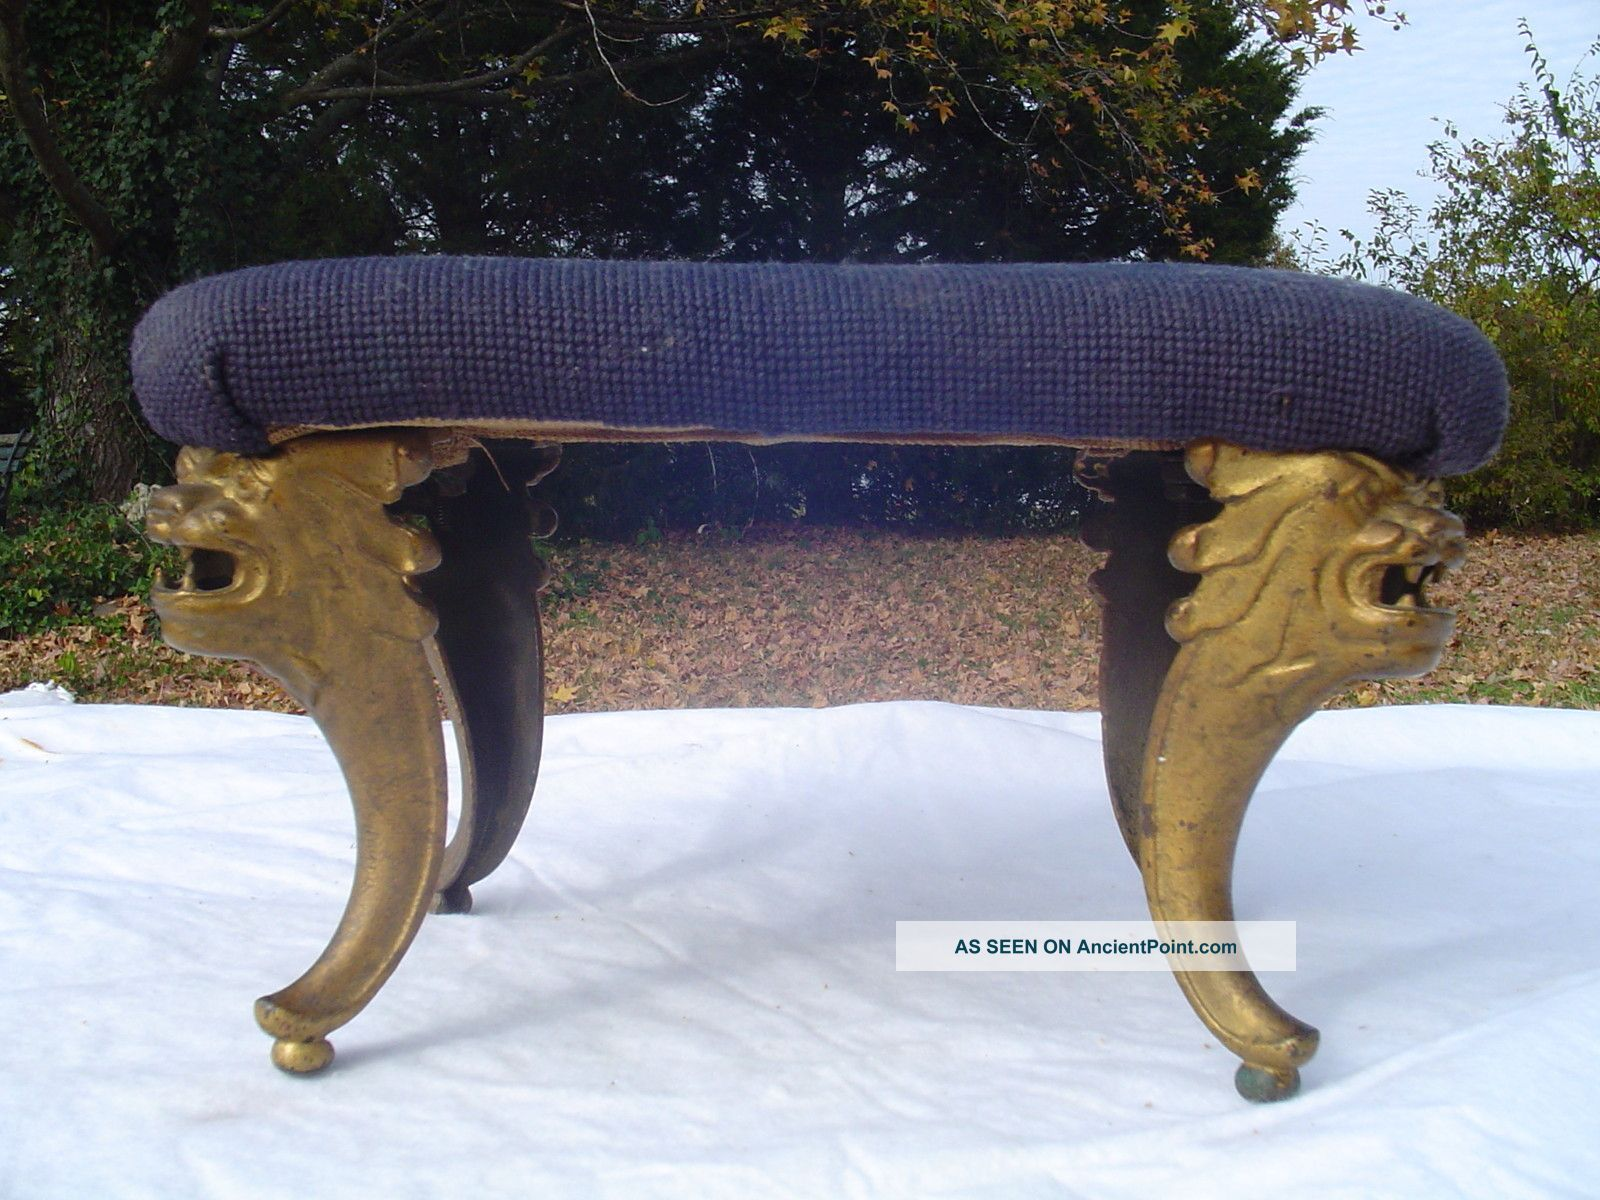 Antique Victorian Cast Iron Ornate Legs And Needlepoint Top 1800-1899 photo